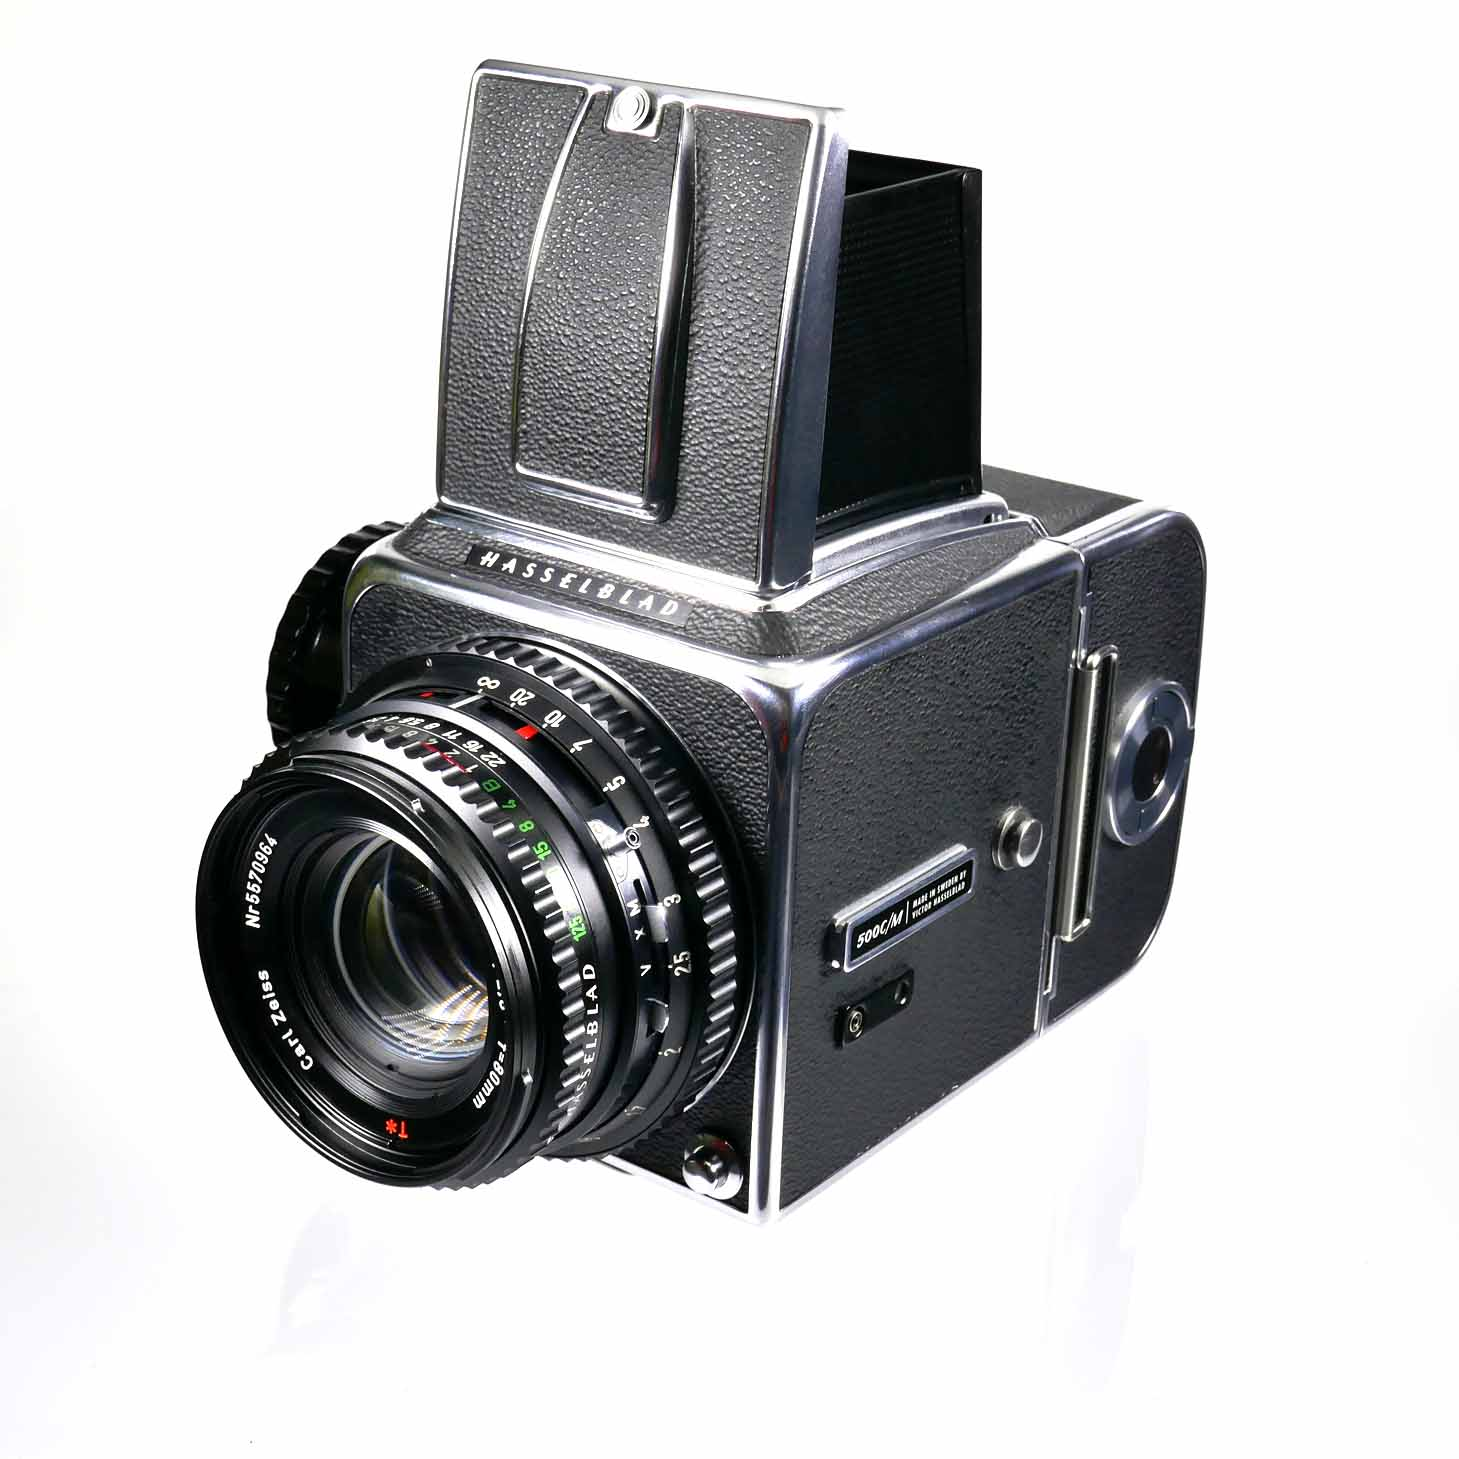 clean-cameras-Hasselblad-500cm-Carl-Zeiss-80mm-04